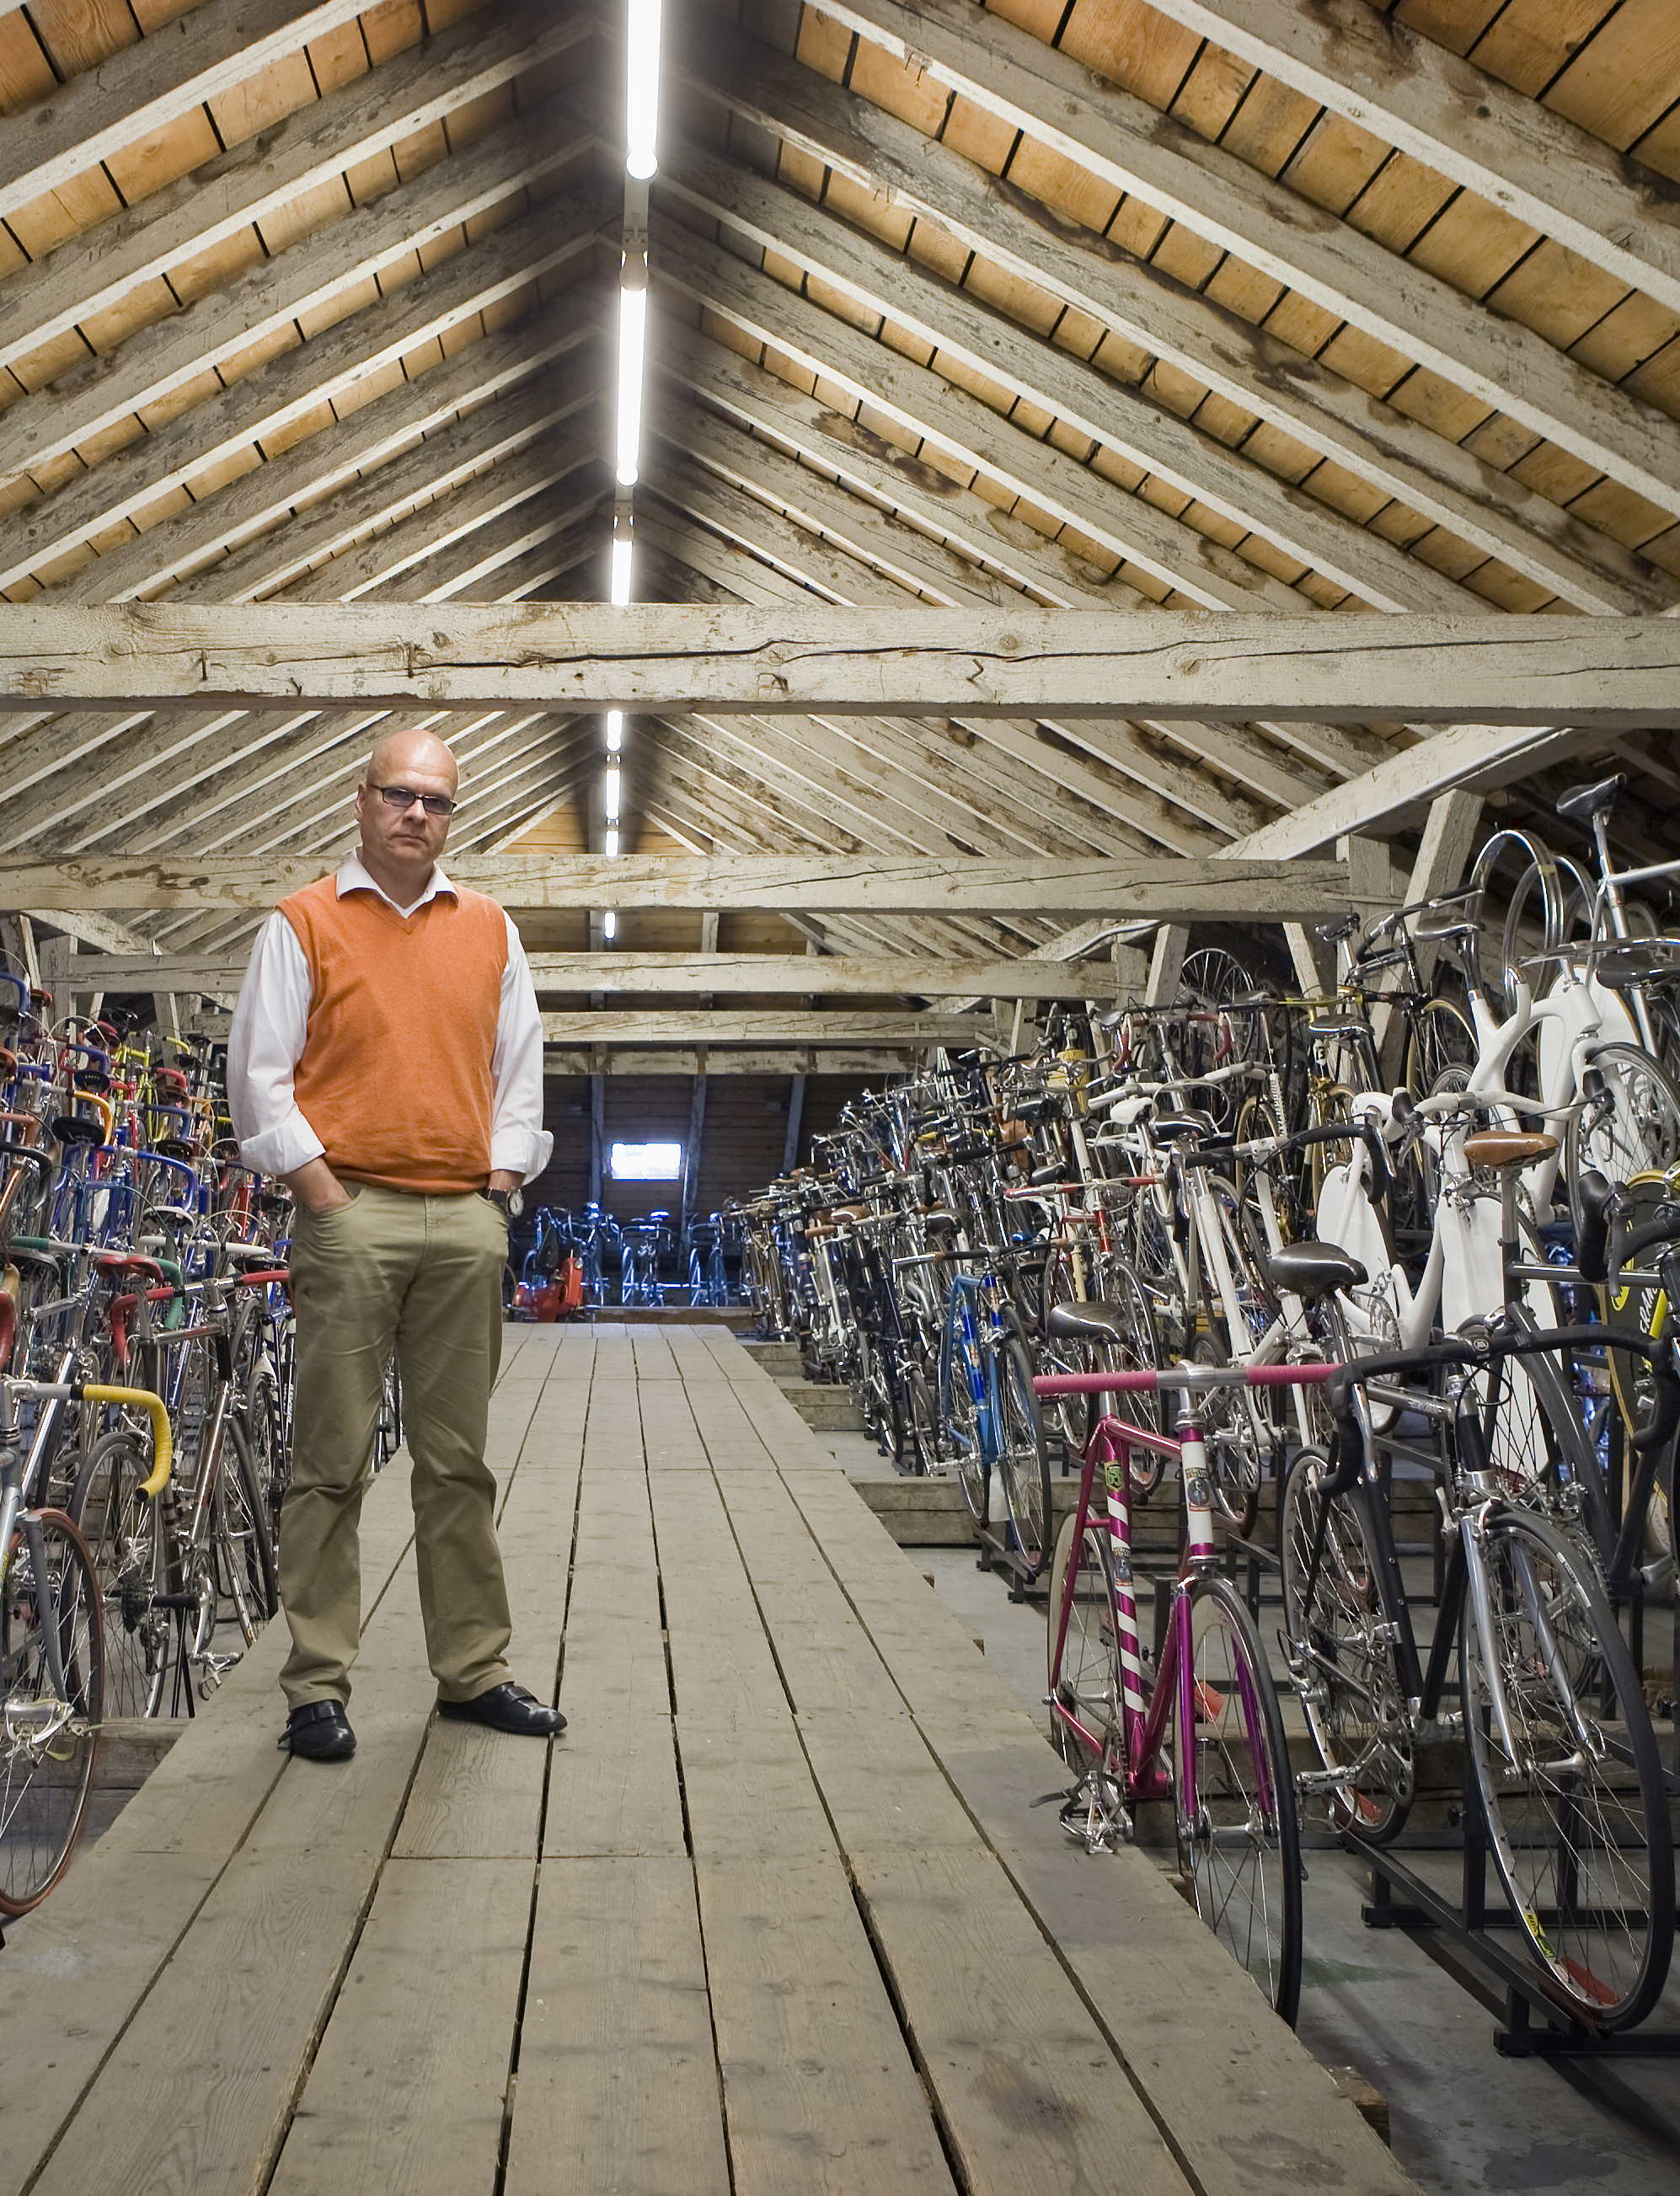 Cyclepedia's bike collector and architecht Michael Embach